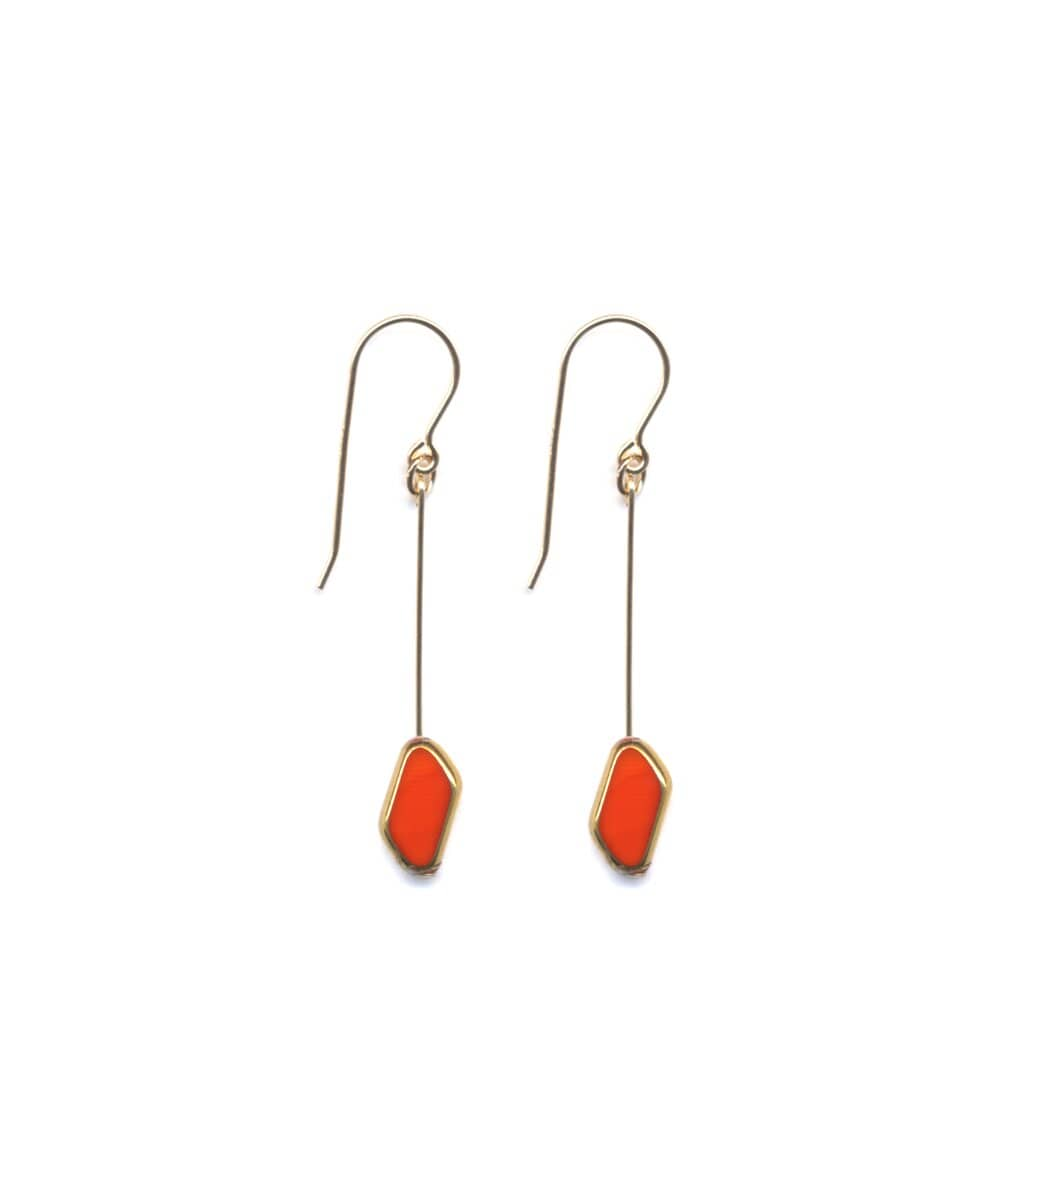 Irk Jewelry I. Ronni Kappos E1469 Red Rhombus Earrings